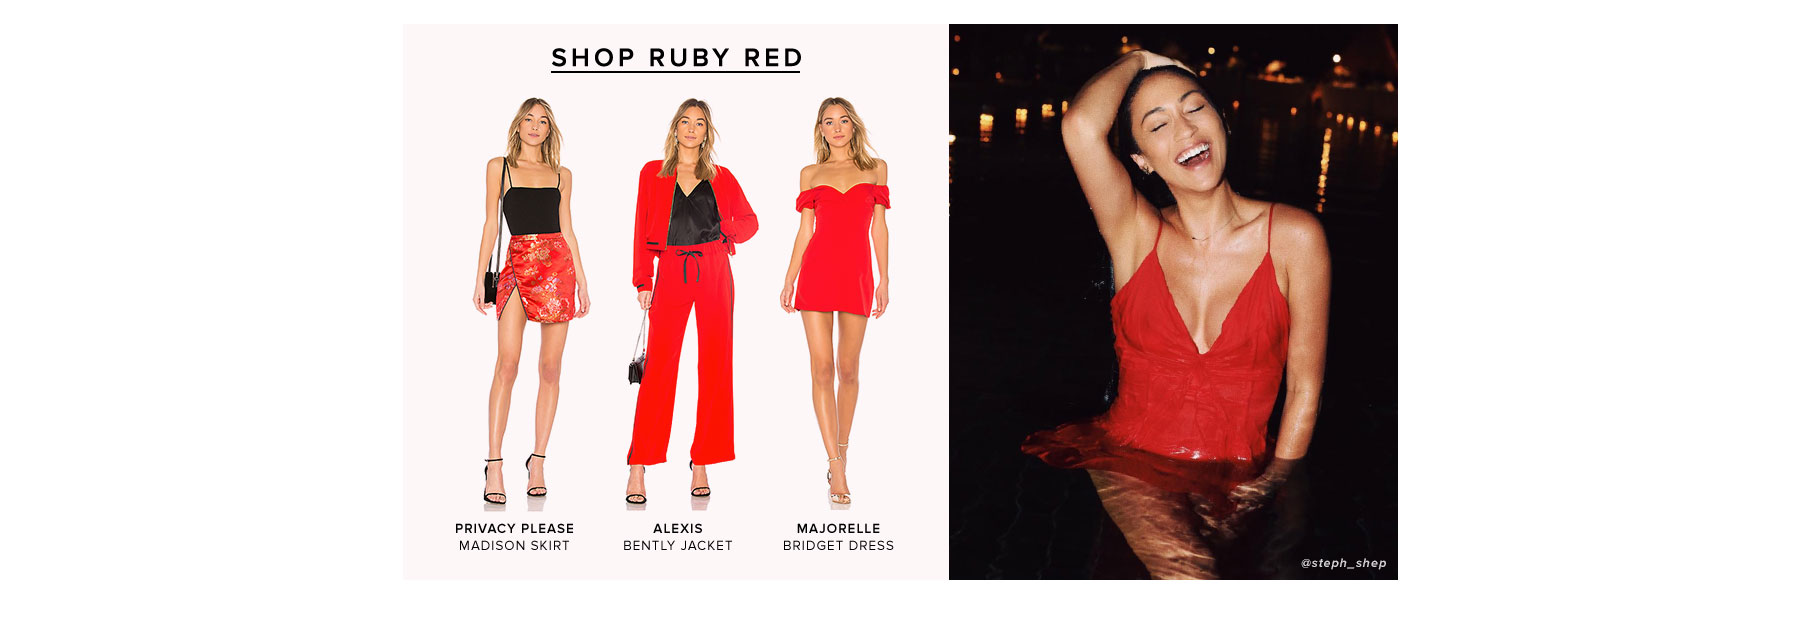 Pink + Red. Can't take our eyes off these hues. Shop Ruby Red.